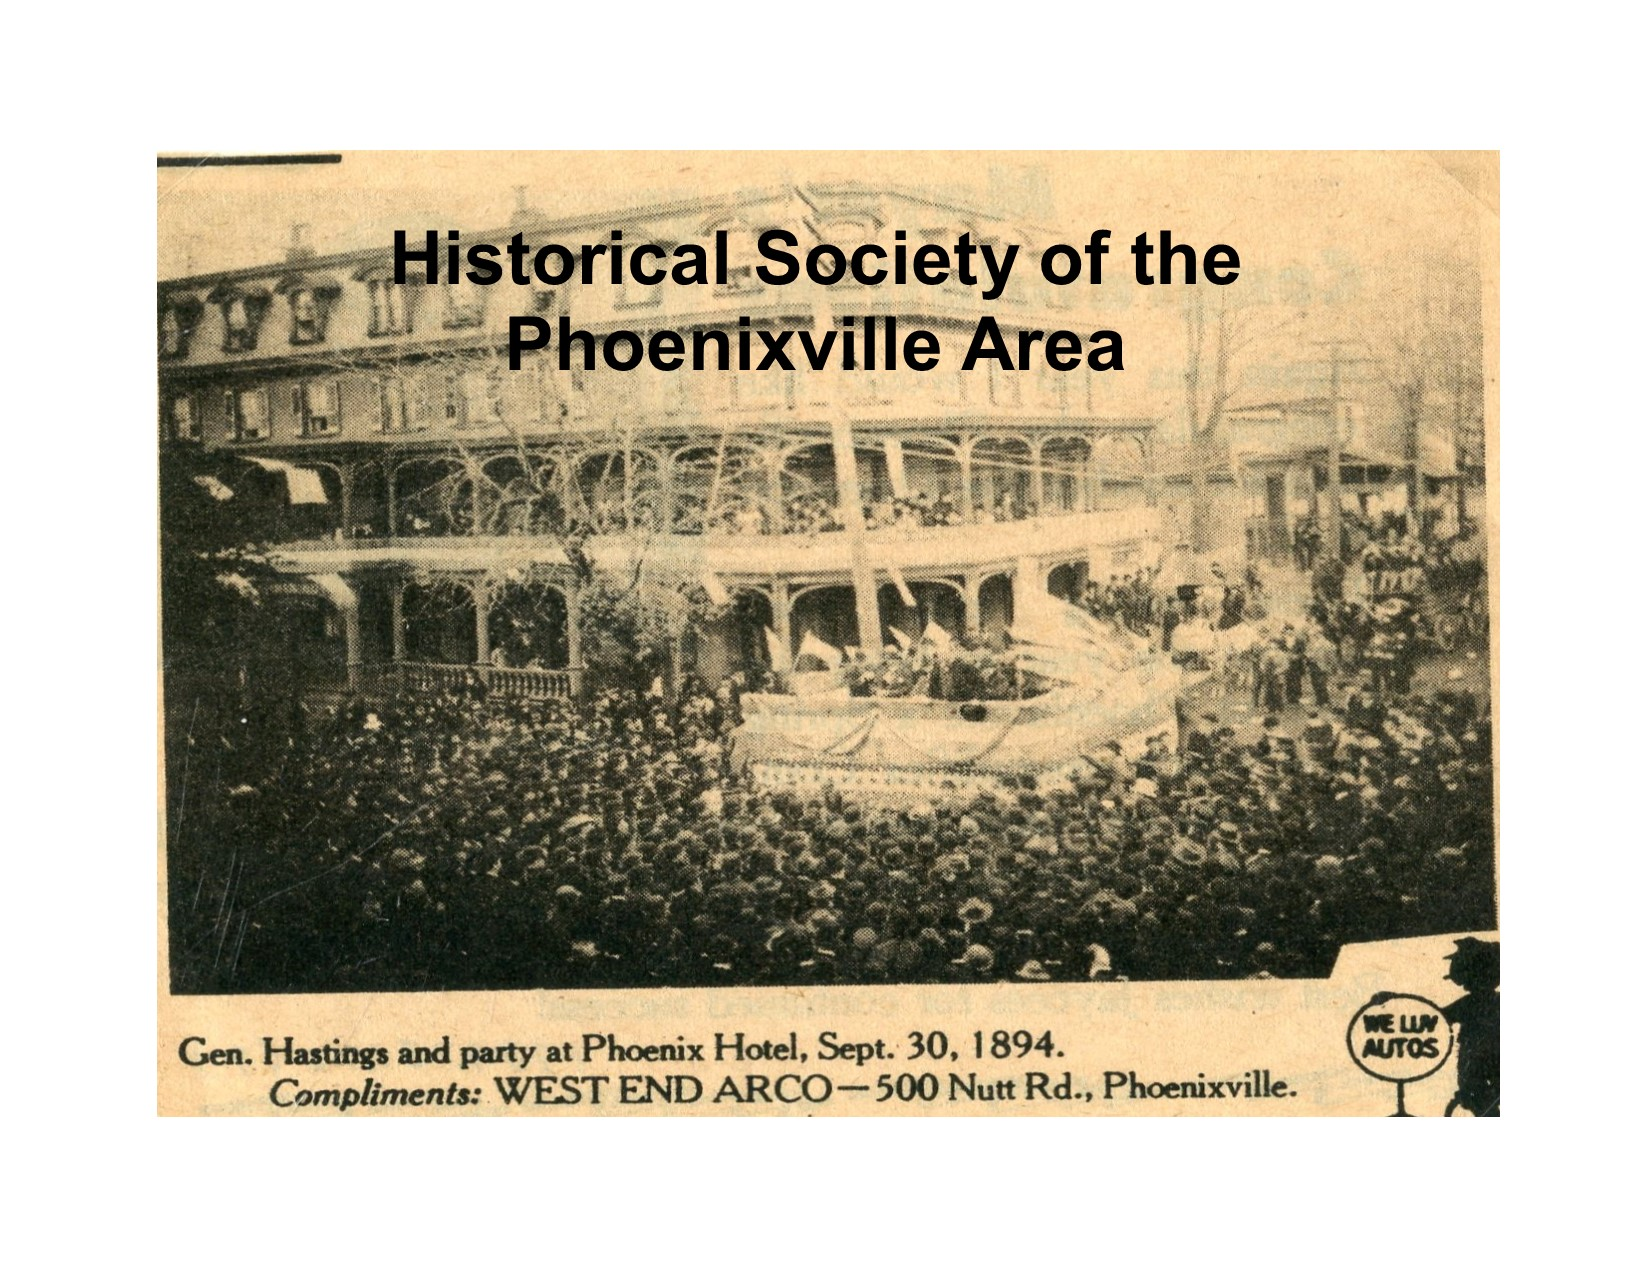 Phoenix Hotel General Hastings Party 1894 Photo 1989 131 15w 9